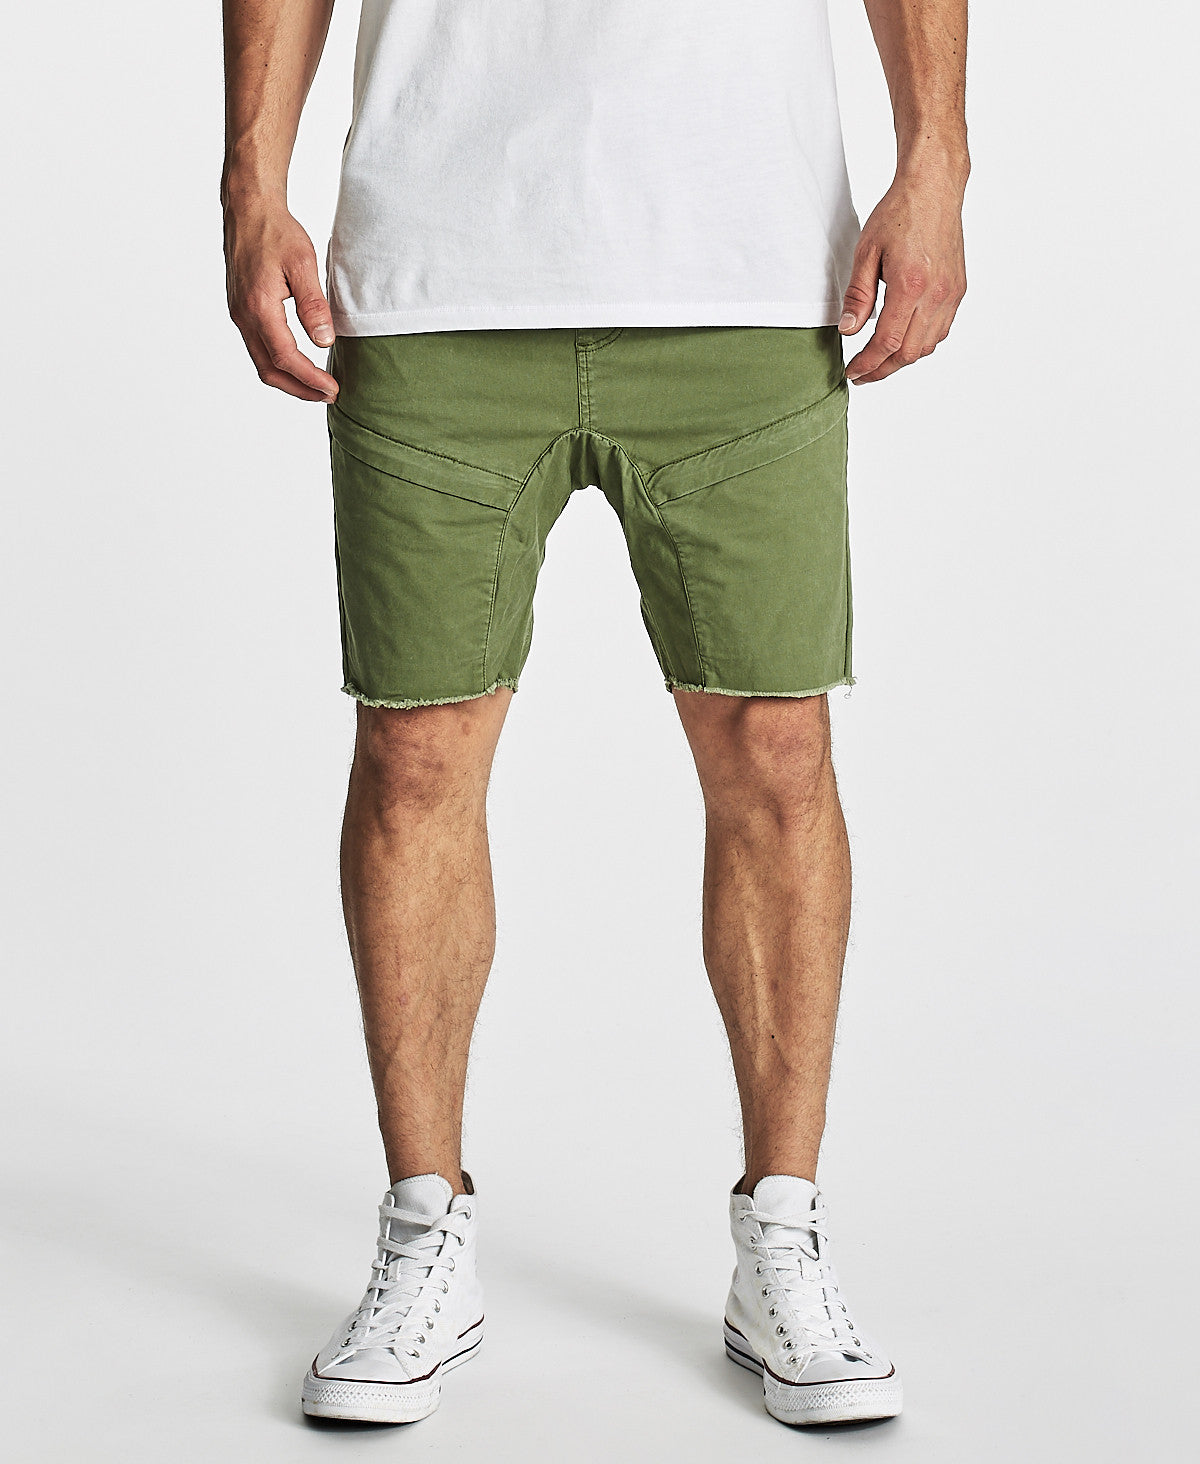 KSCY Trooper Short - Sea Green - Forestwood Co